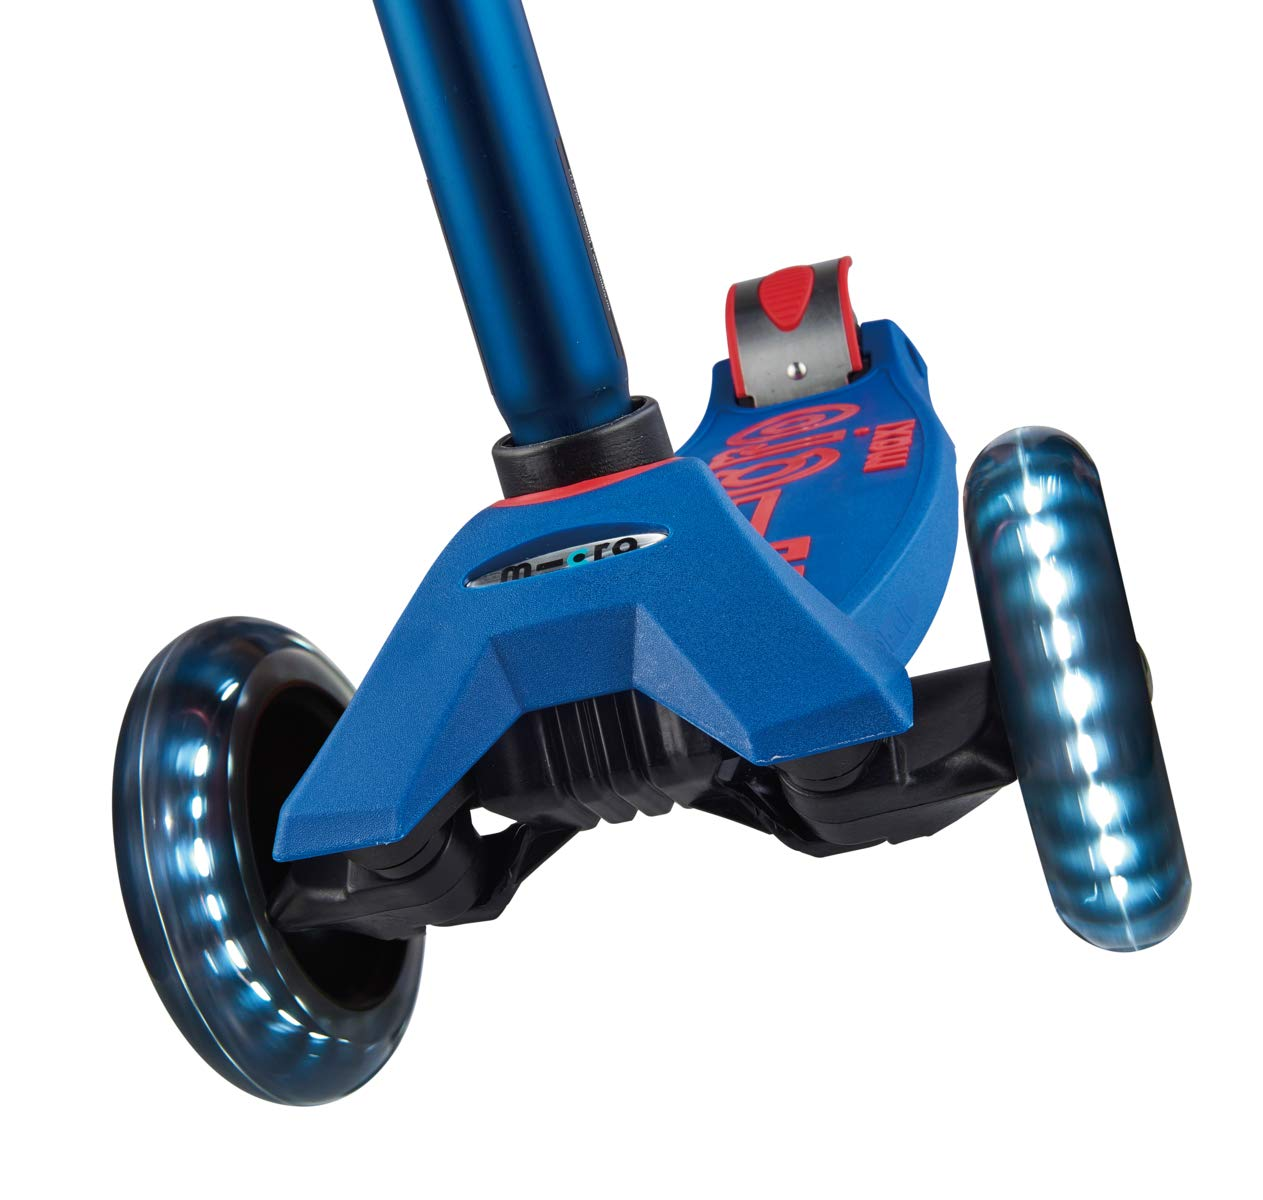 Micro Maxi Deluxe - LED 3-Wheeled, Lean-to-Steer, Swiss-Designed Micro Scooter for Kids with LED Light-up Wheels, Ages 5-12 - Blue by Micro Kickboard